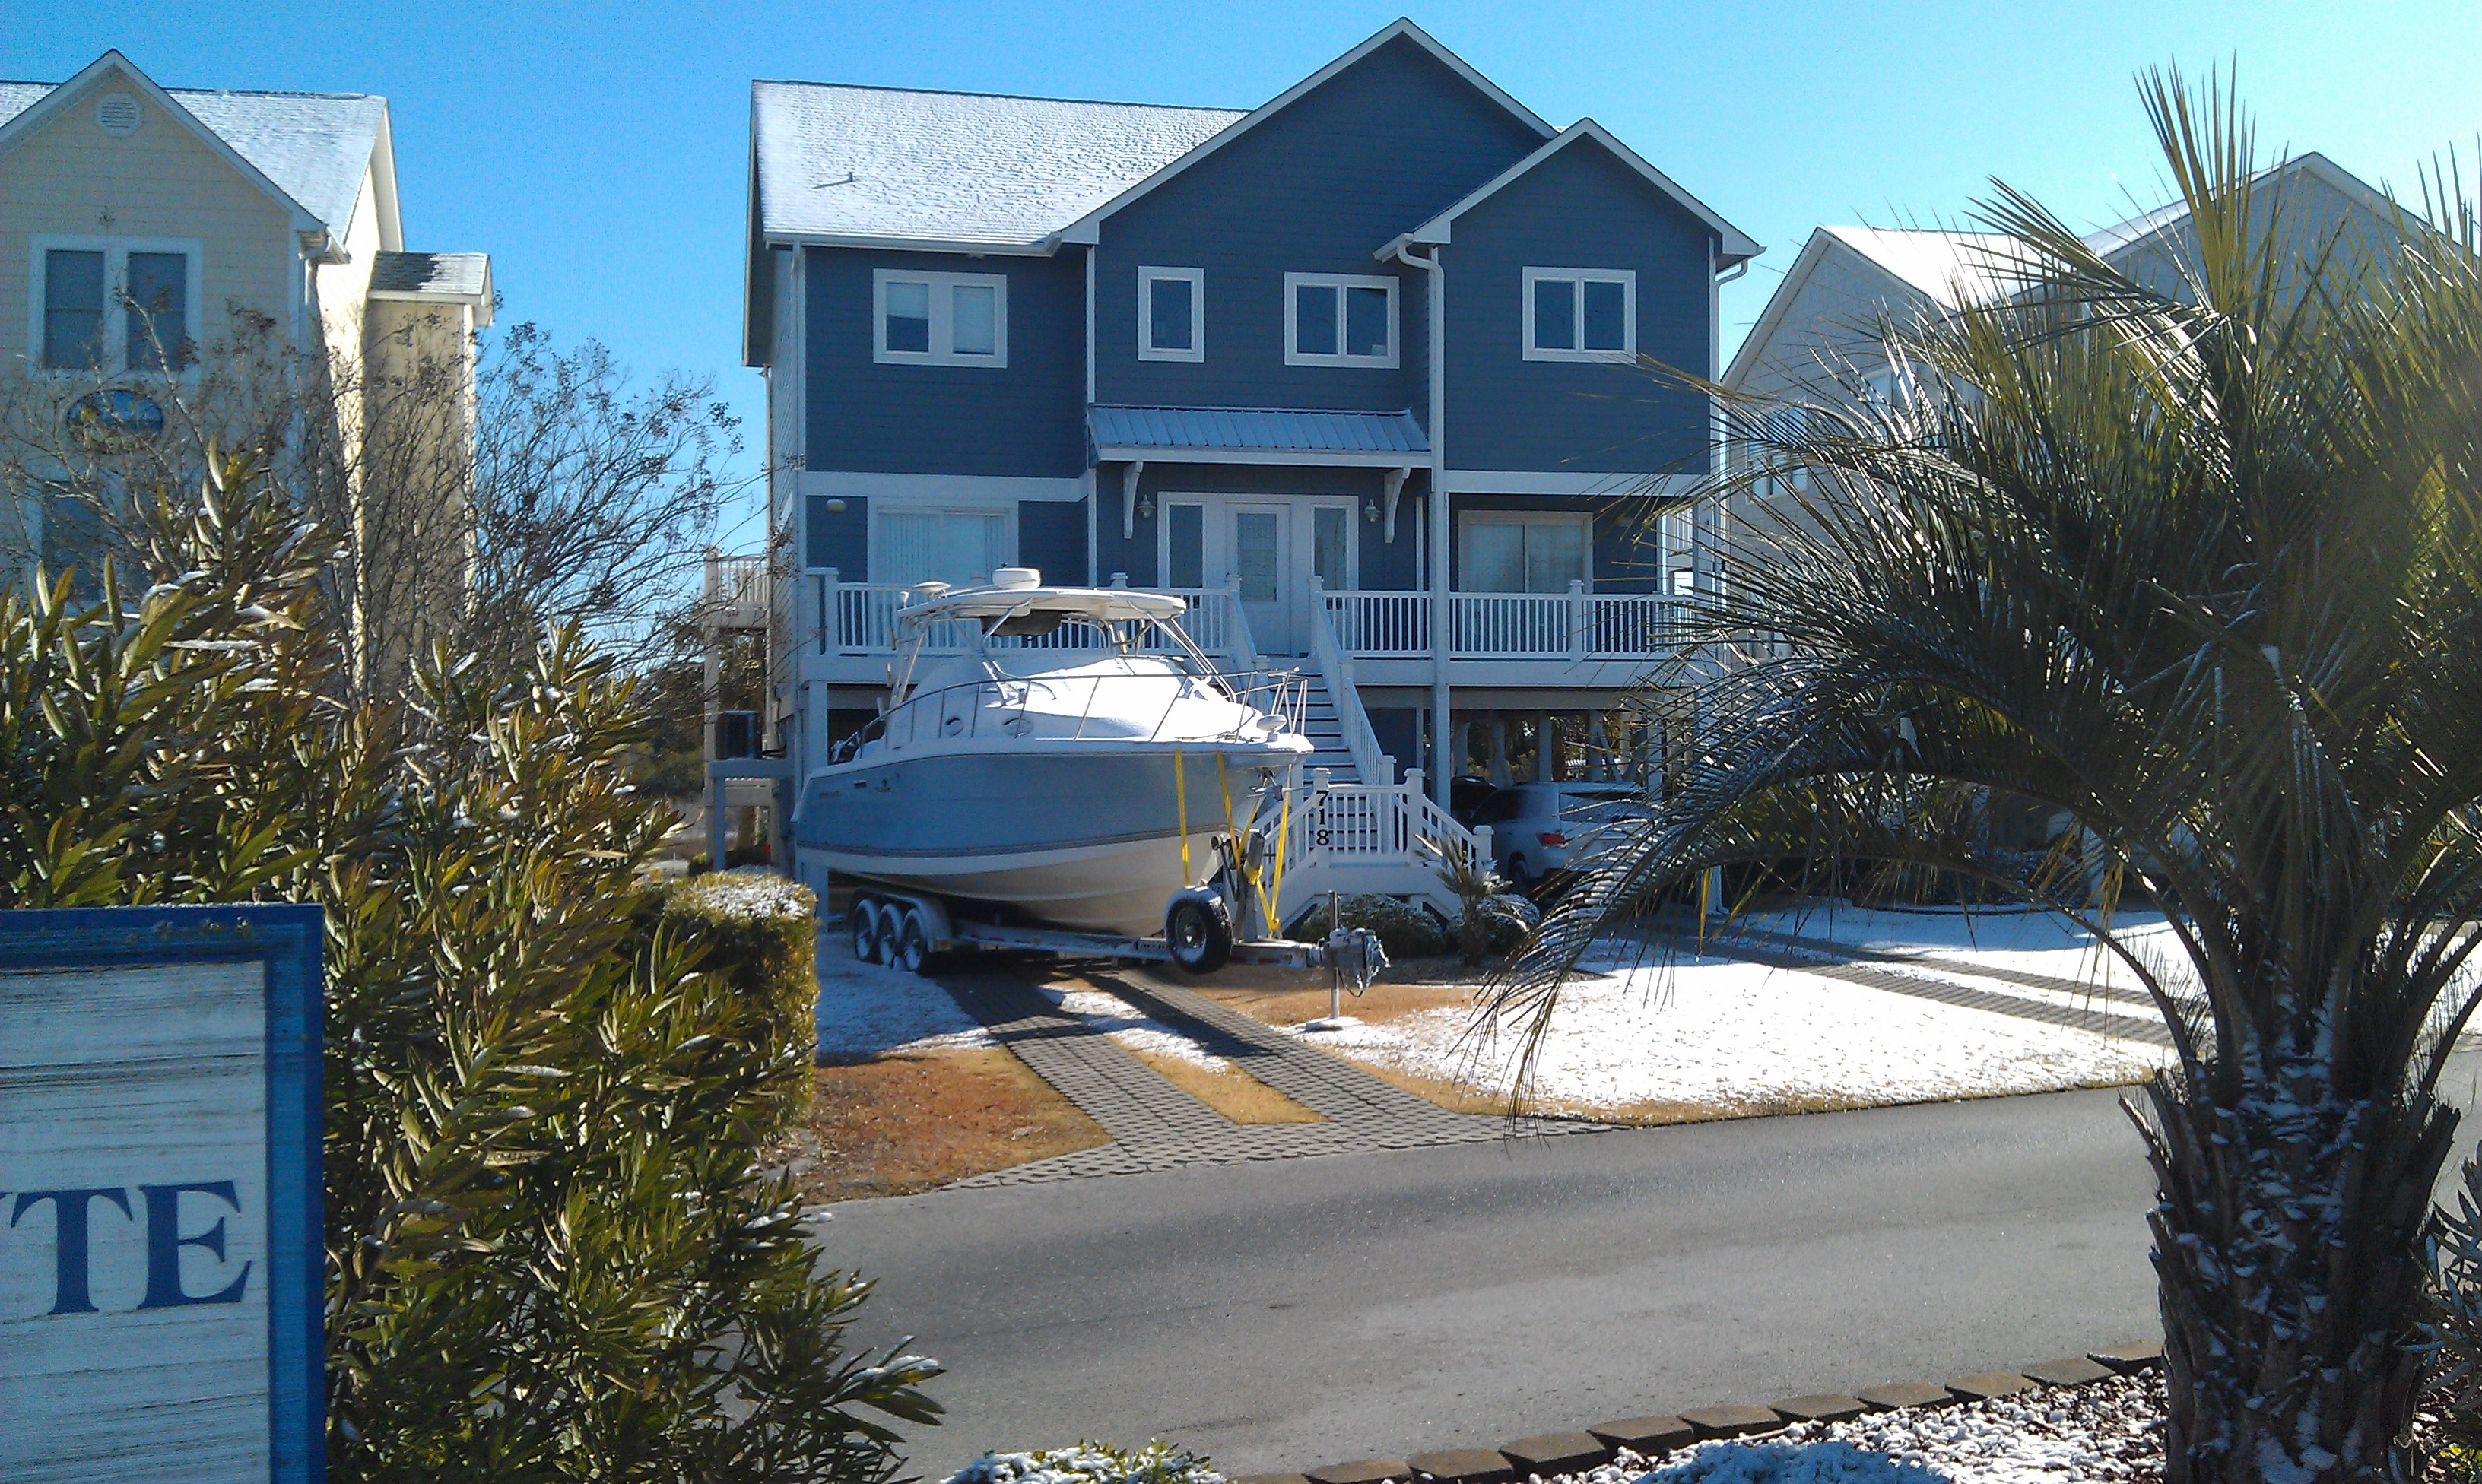 Surf City Boat with Snow